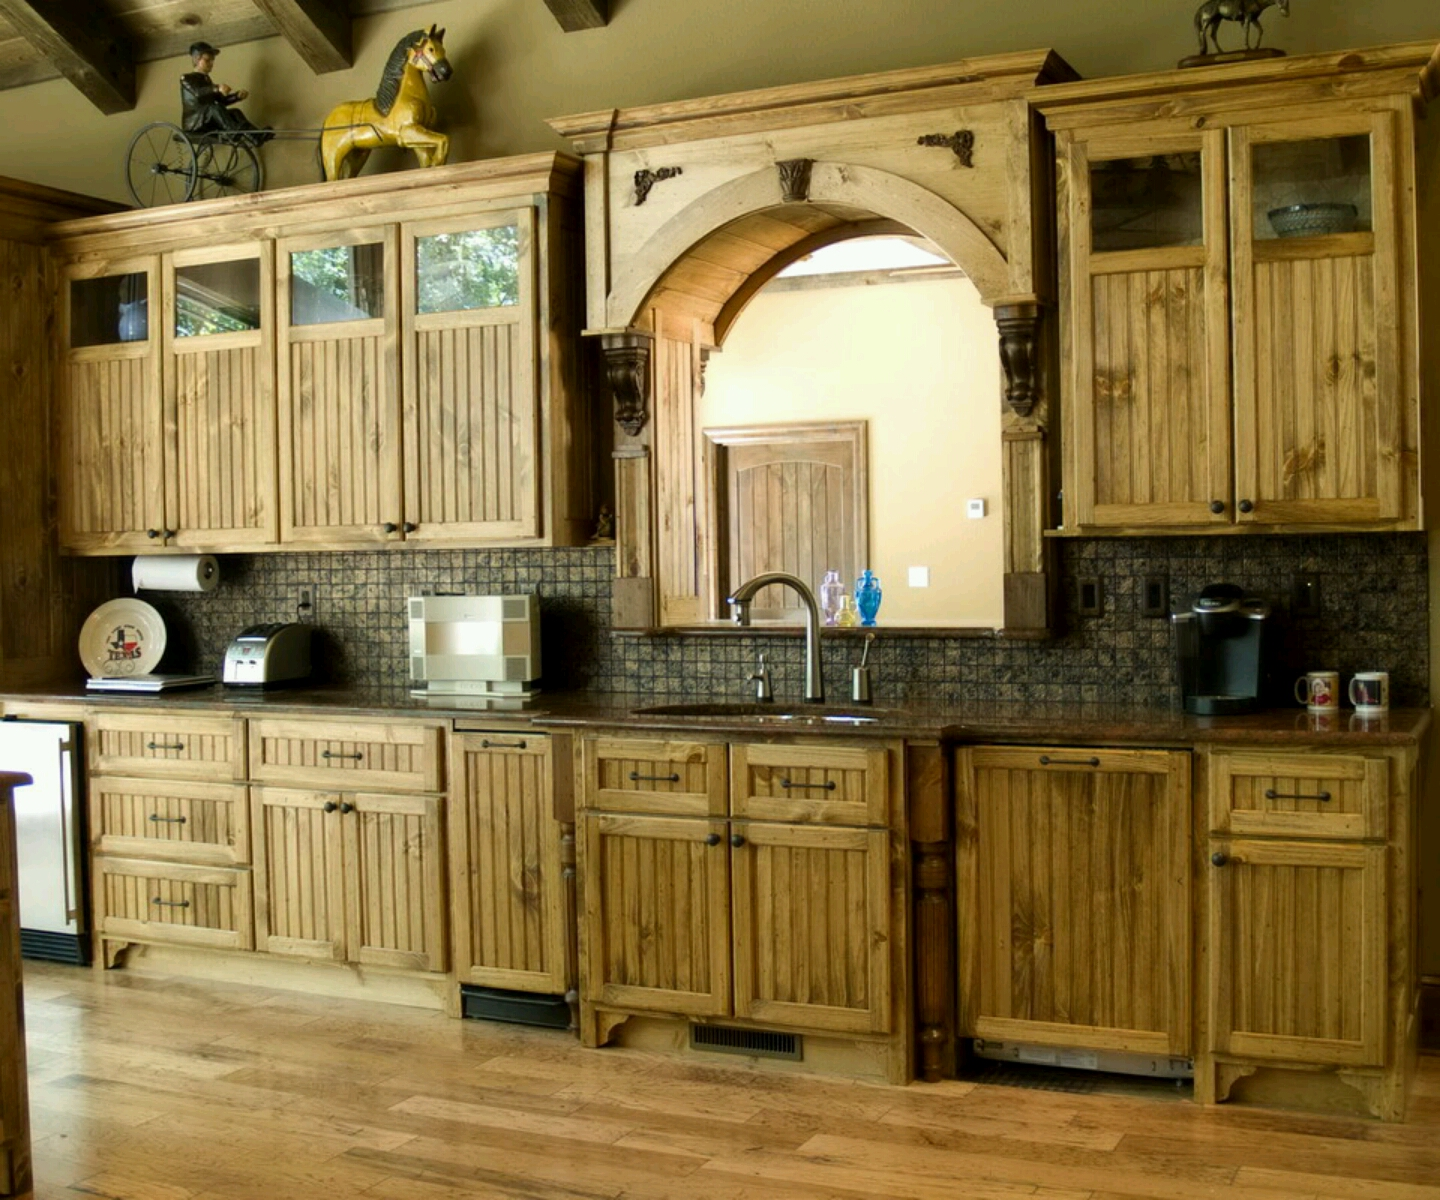 Modern wooden kitchen cabinets designs furniture gallery for Kitchen furniture design ideas